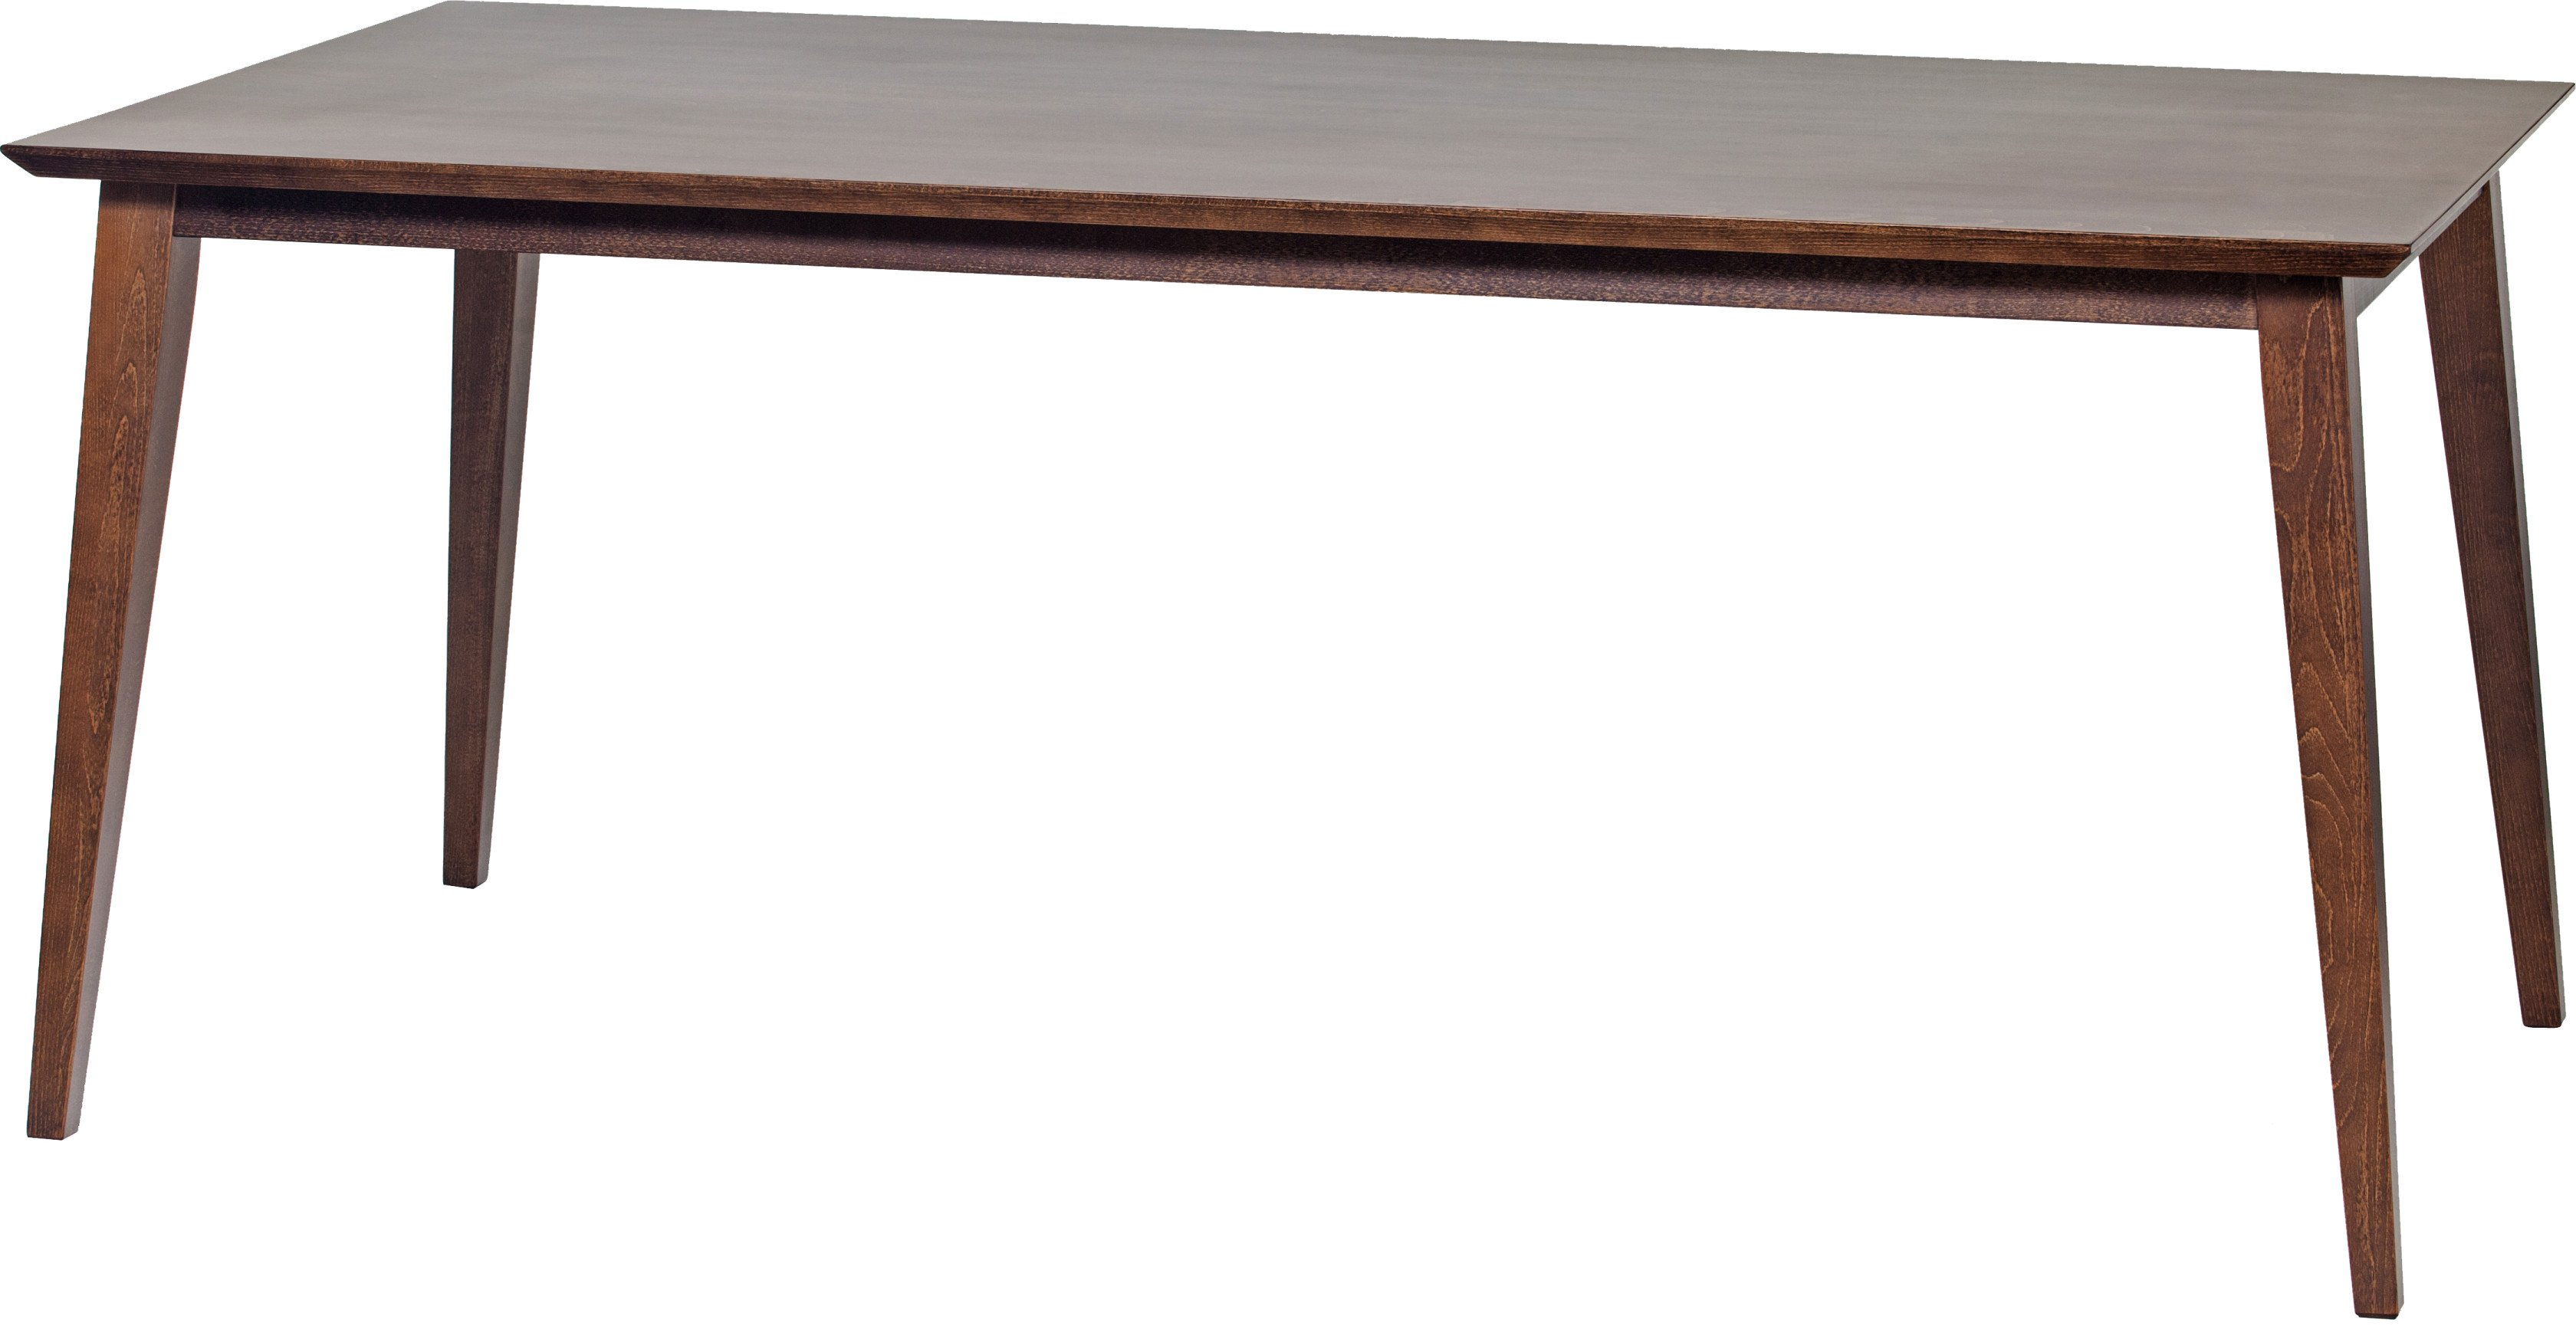 Jutland Extendable Table 200x90 American Walnut by M. K. Johansen for TON